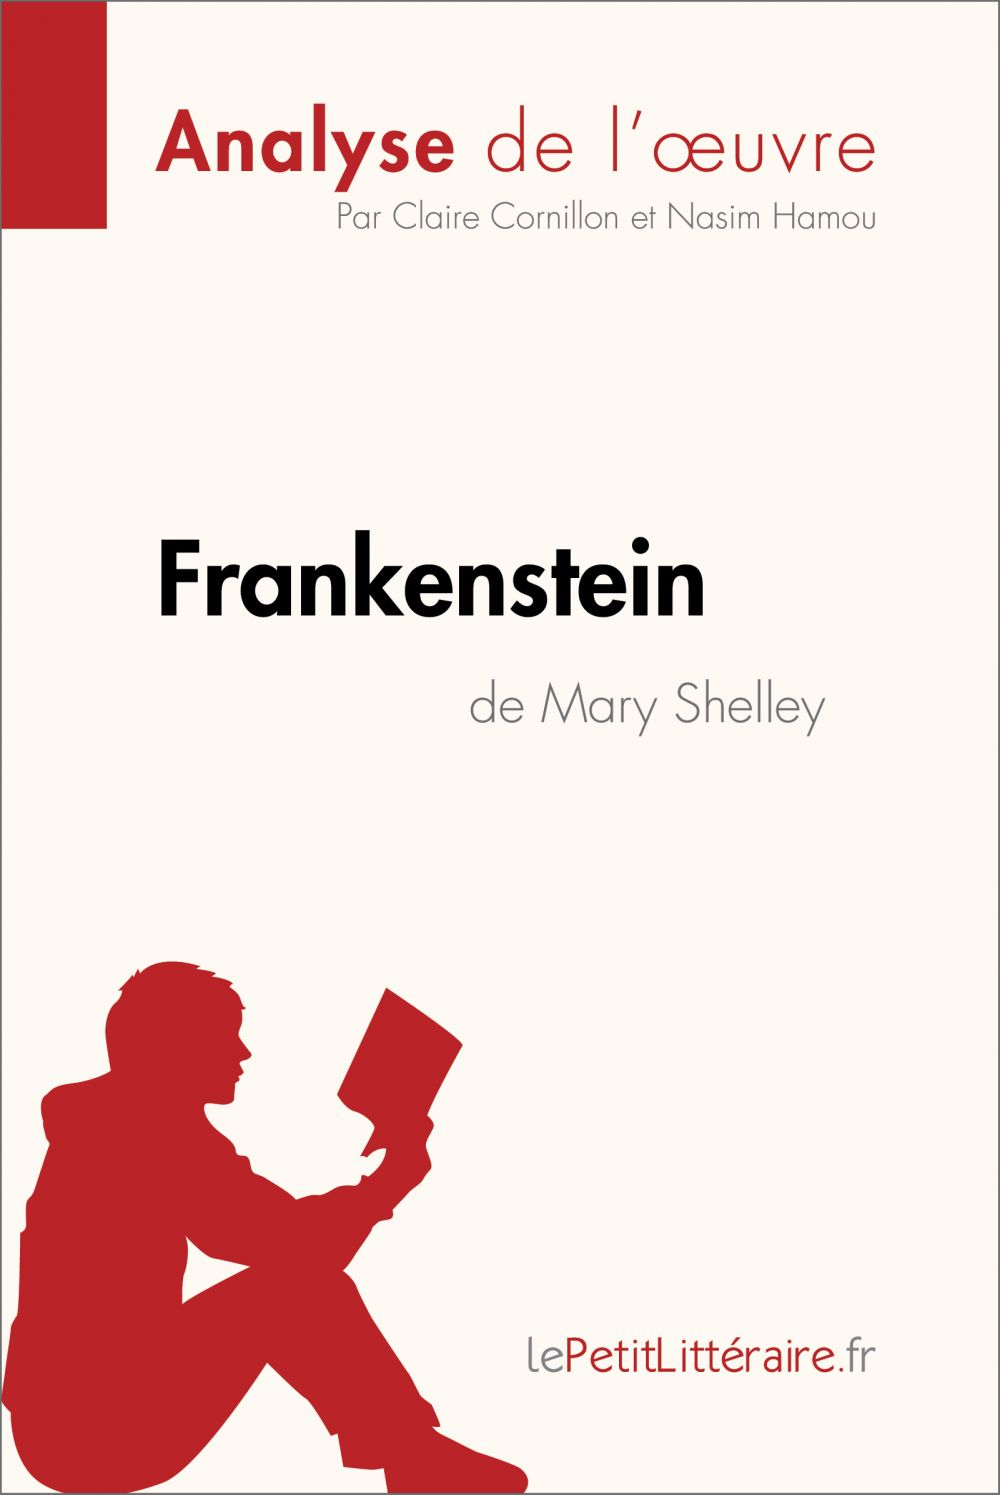 Frankenstein de Mary Shelley (Analyse de l'oeuvre)